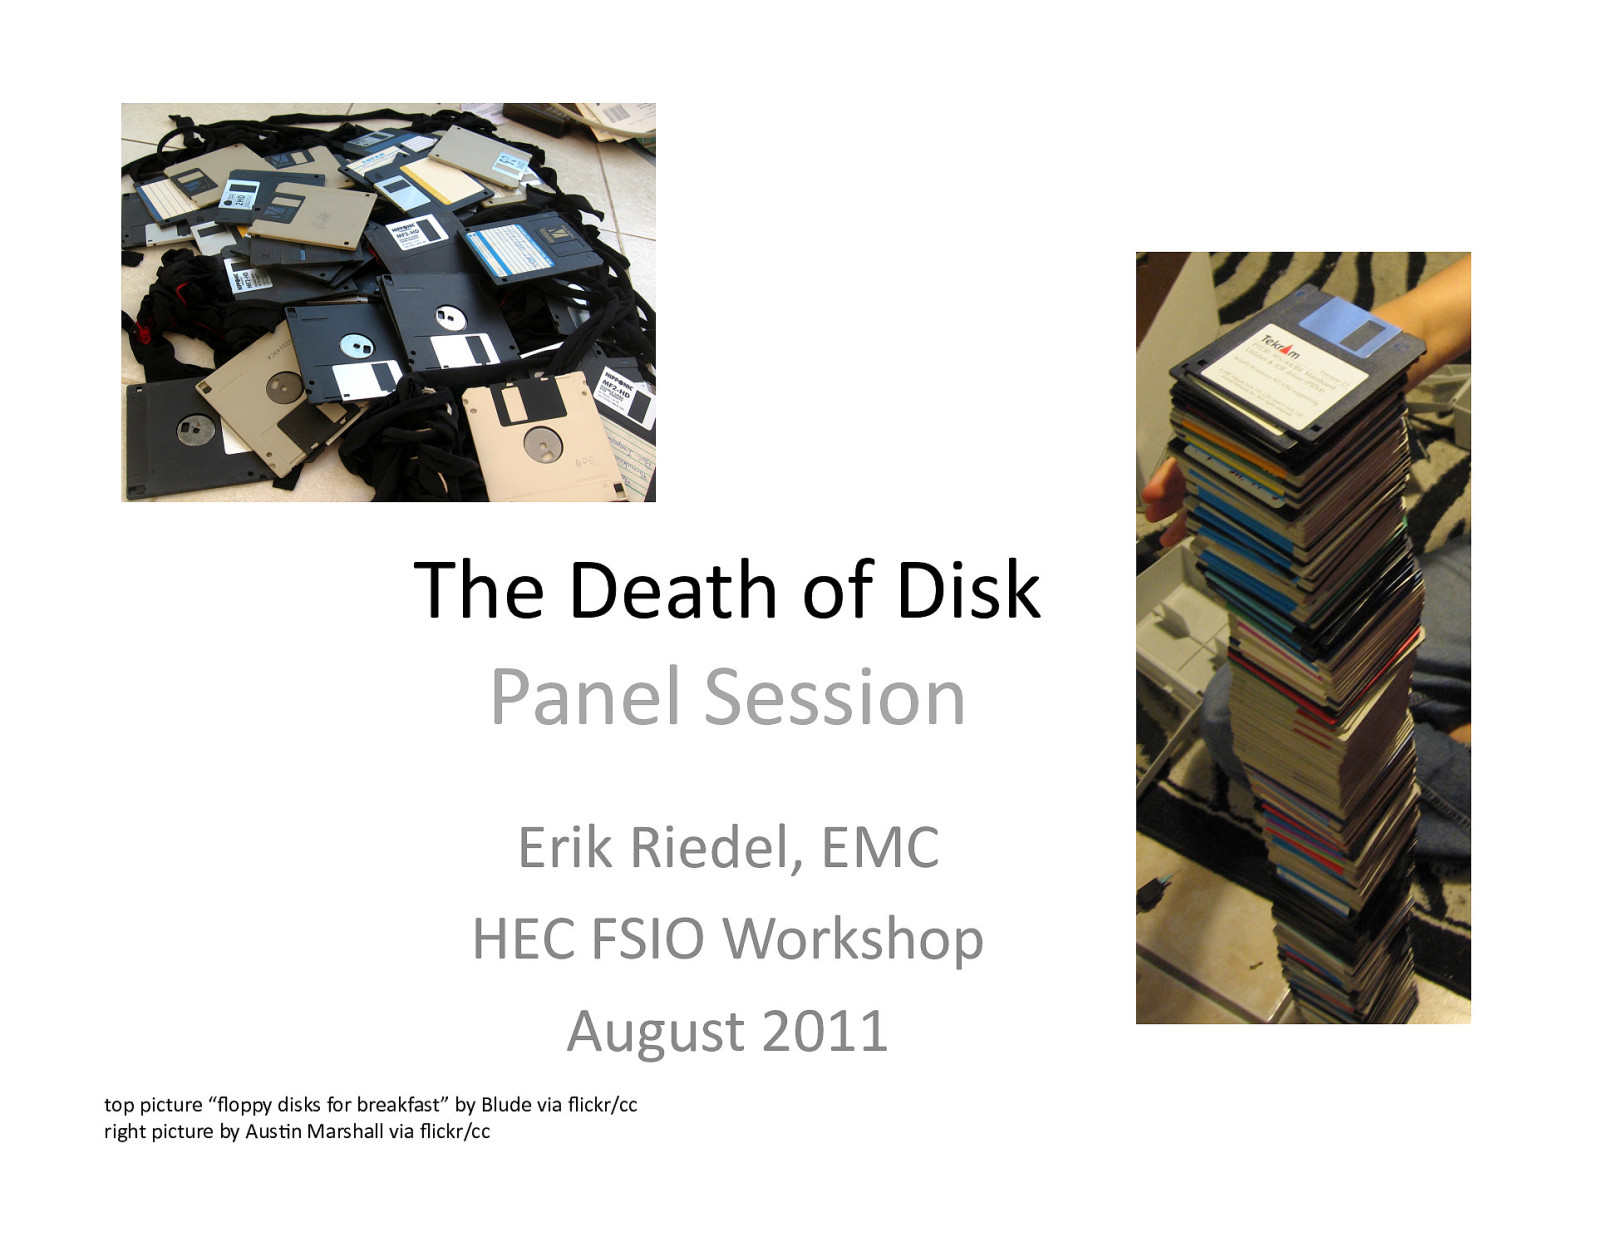 The Death of Disk - Panel Session